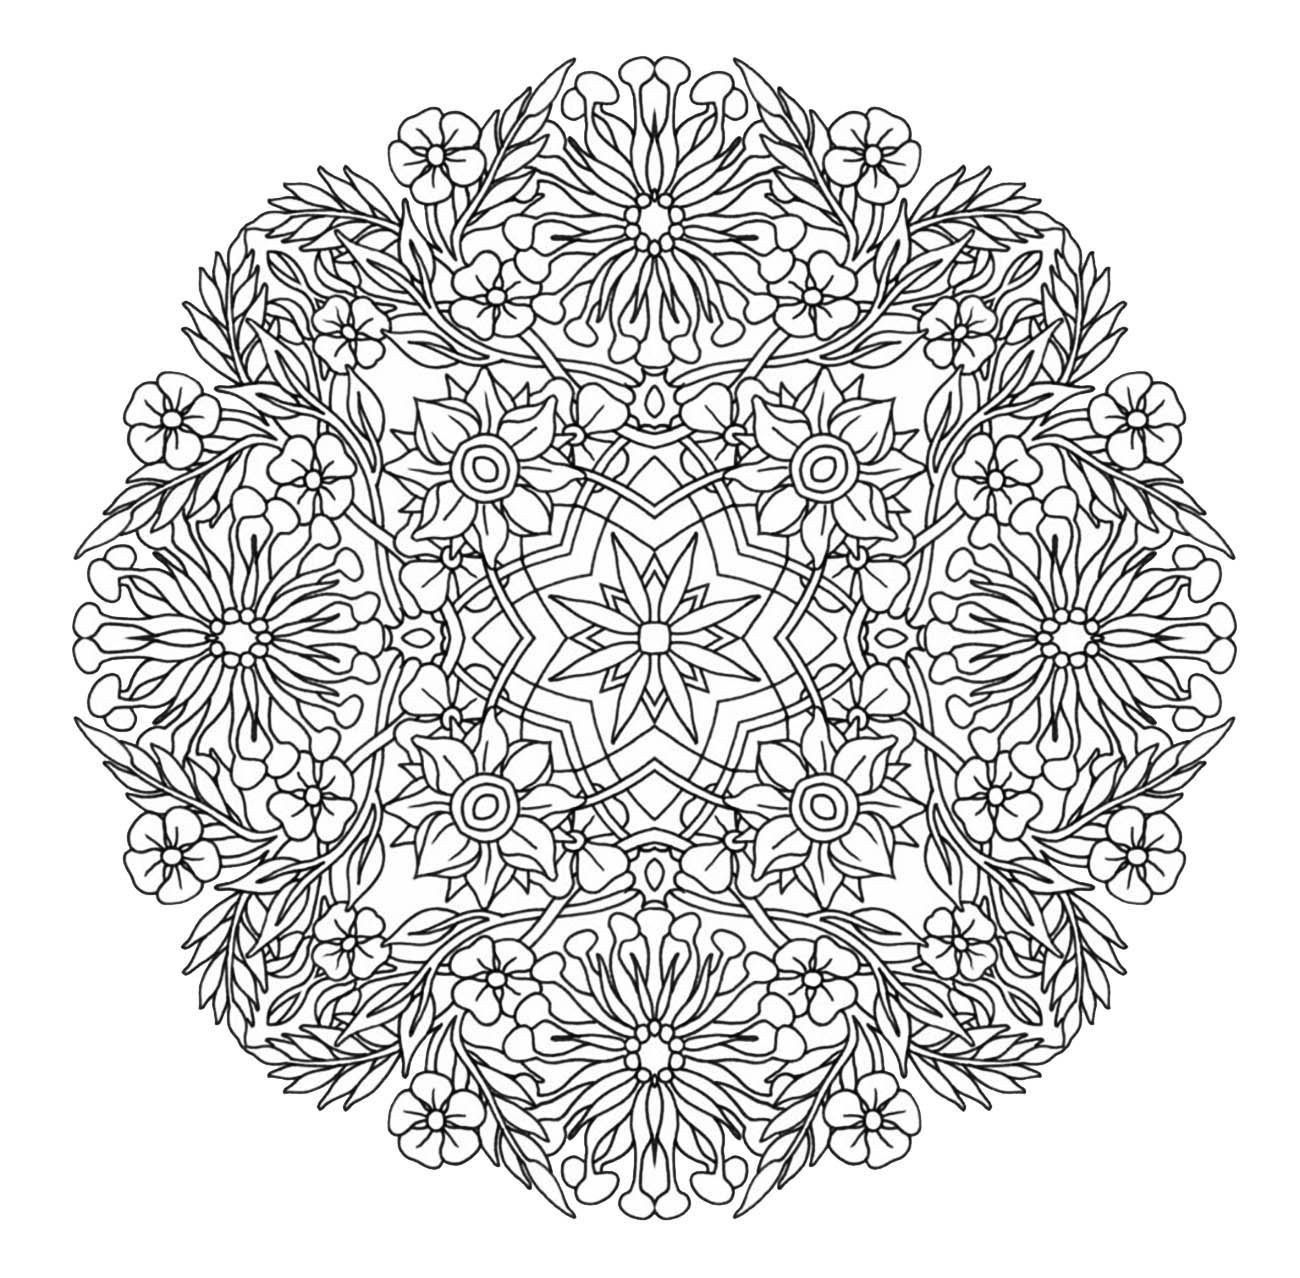 Advanced Mandala Coloring Pages Beautiful Mandala To Magical Flowersfrom The Gallery Mandala Coloring Pages Mandala Coloring Flower Coloring Pages